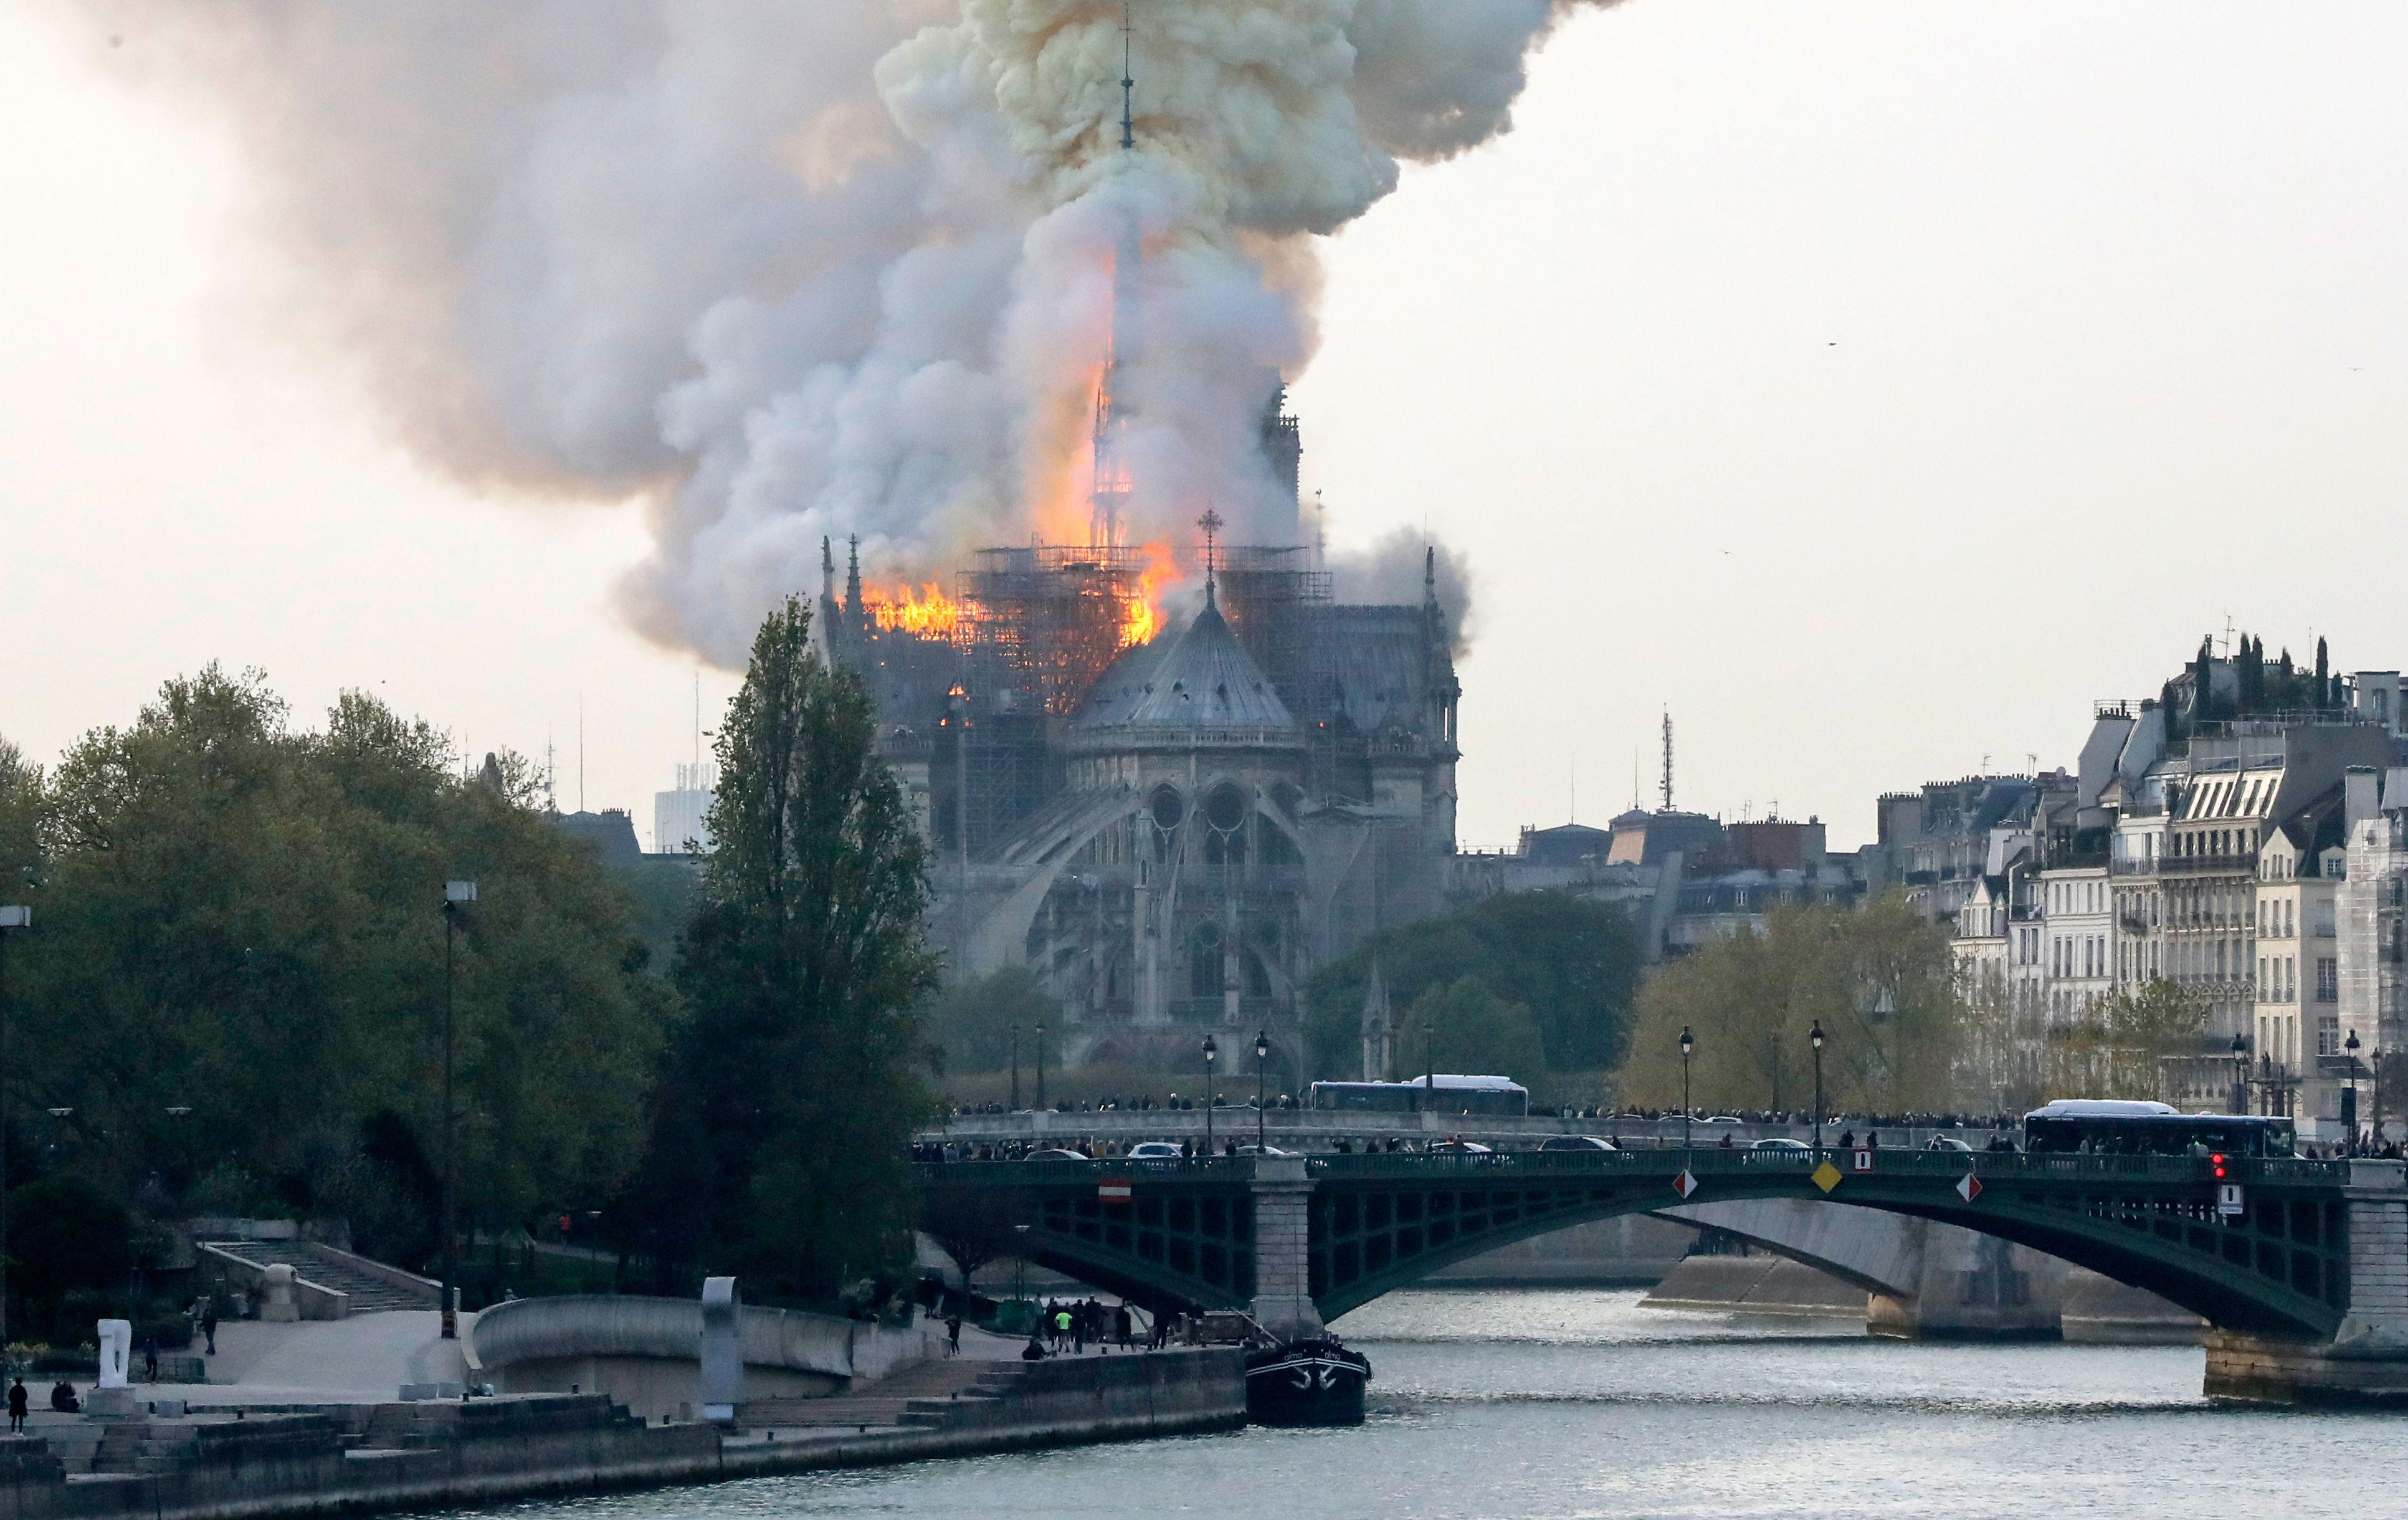 Fire rages at Notre Dame Cathedral in Paris